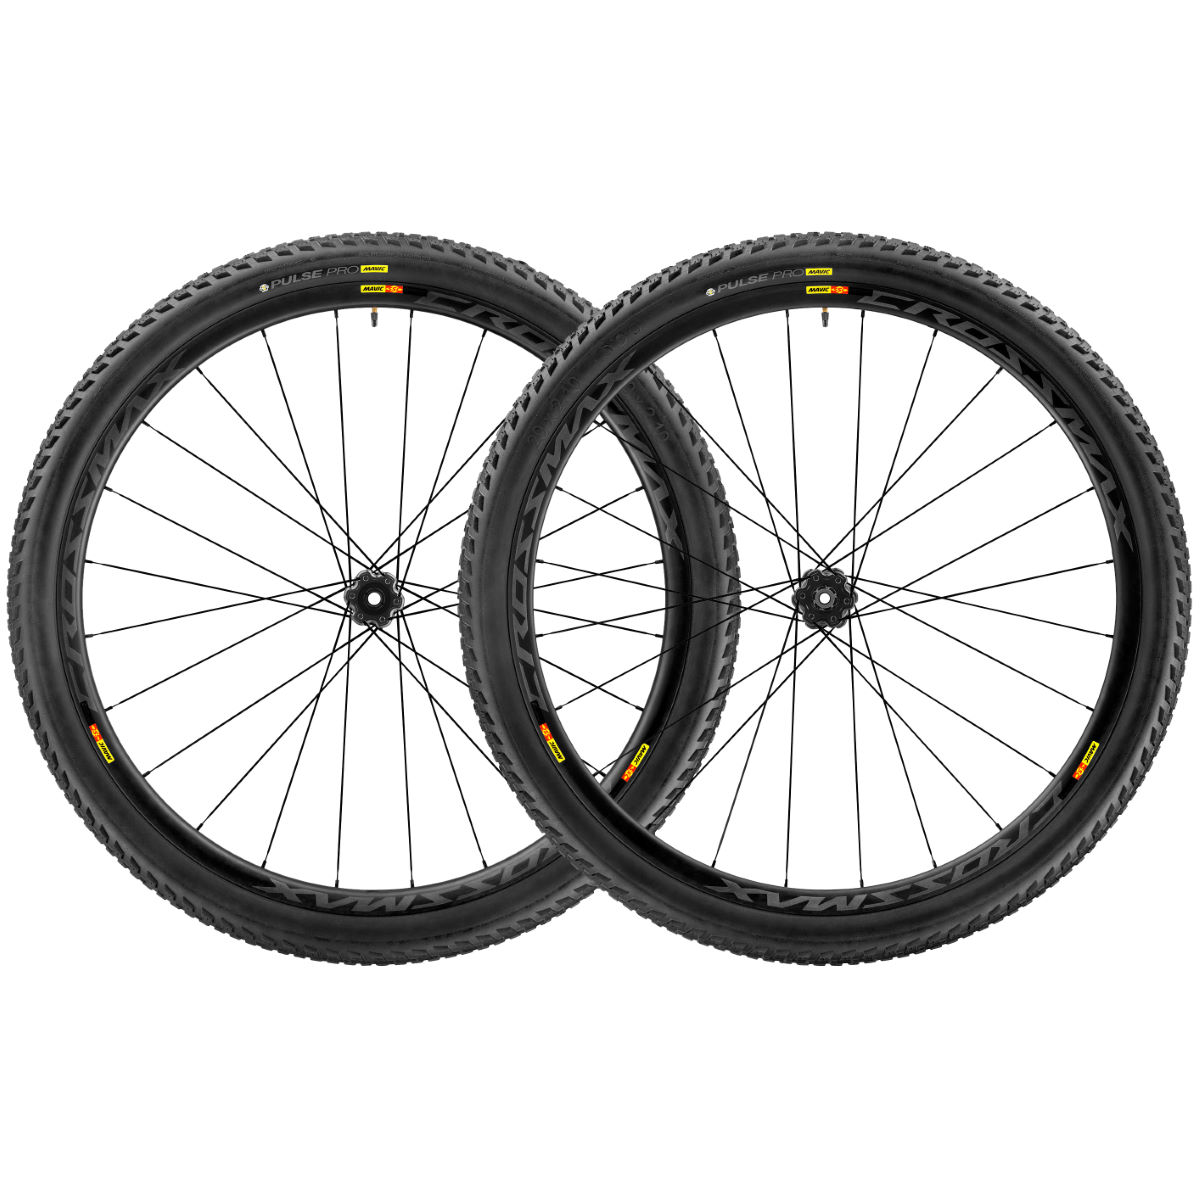 "Wheel set Mavic Crossmax Pro Carbon 27,5 ""(WTS, Shimano) - Competition wheels"